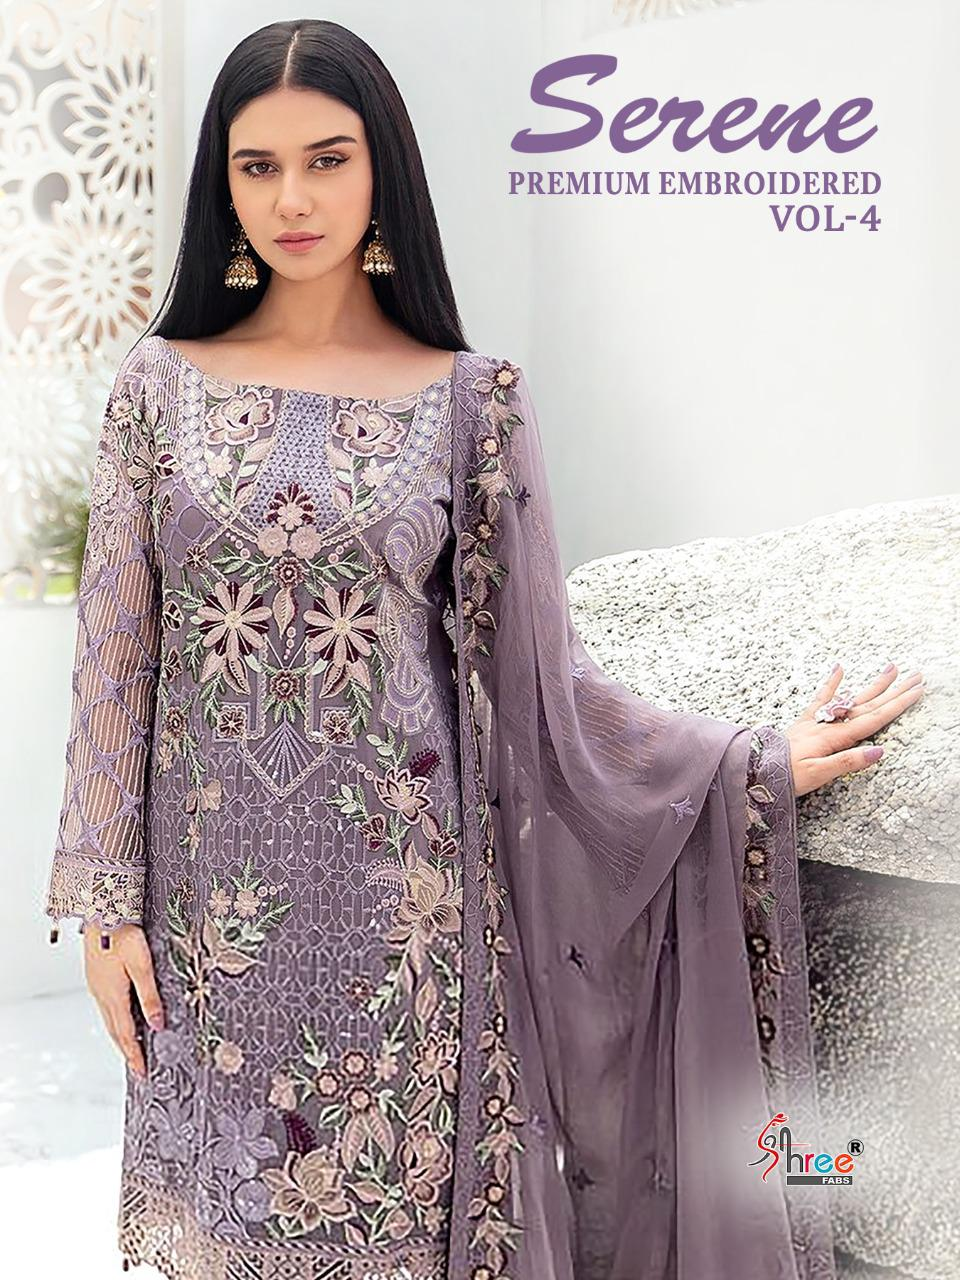 Shree Fab Serene Premium Embroiderd Vol 4 Georgette With Heavy Embroidery Work Pakistani Pattern Suits Wholesale